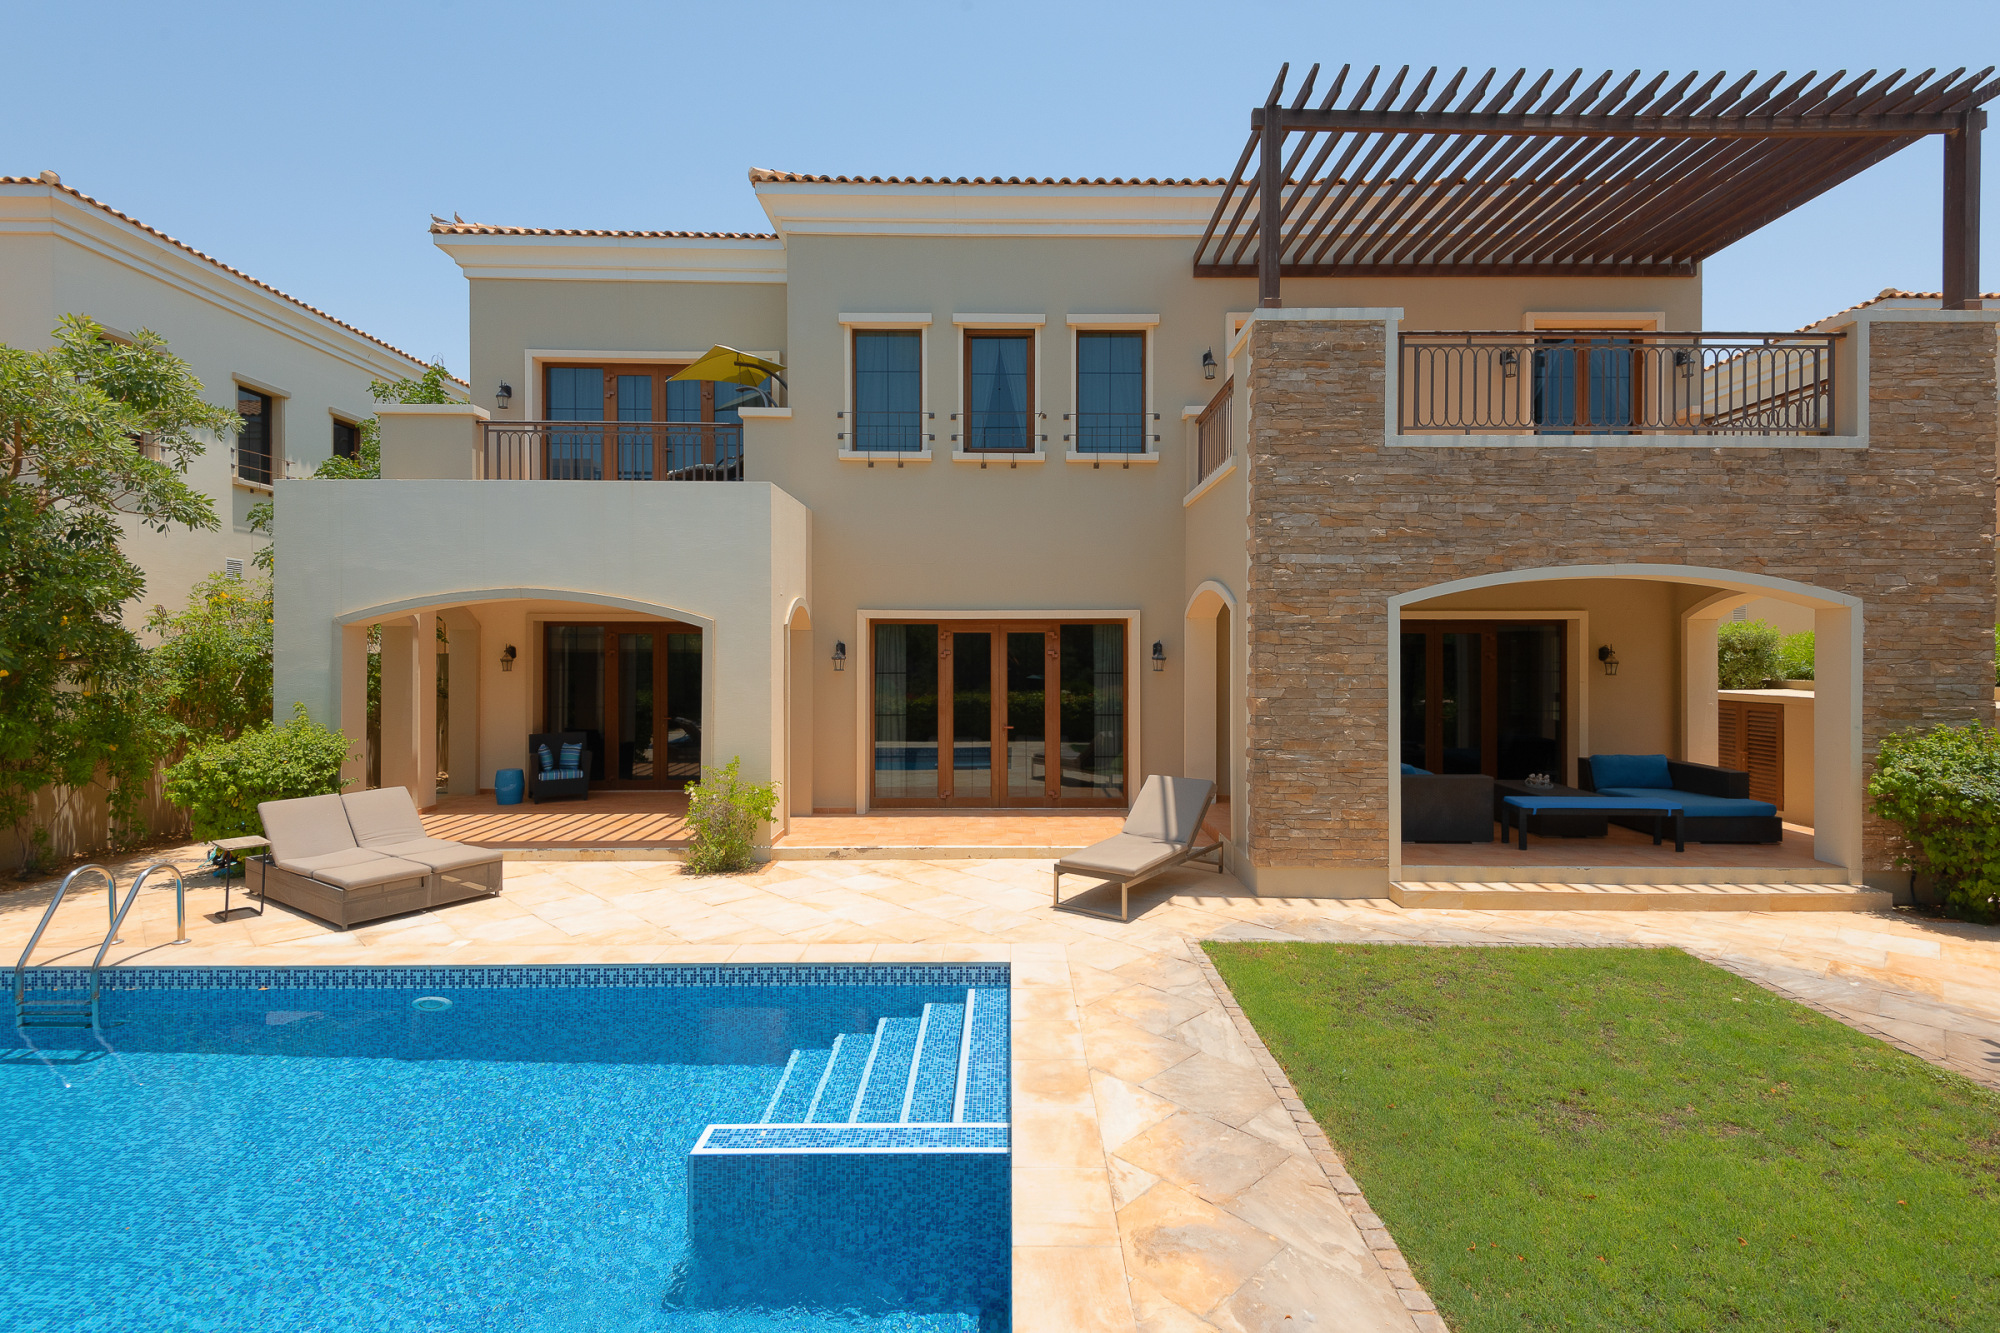 Valencia Style | Full Golf Course | 5 Bedroom